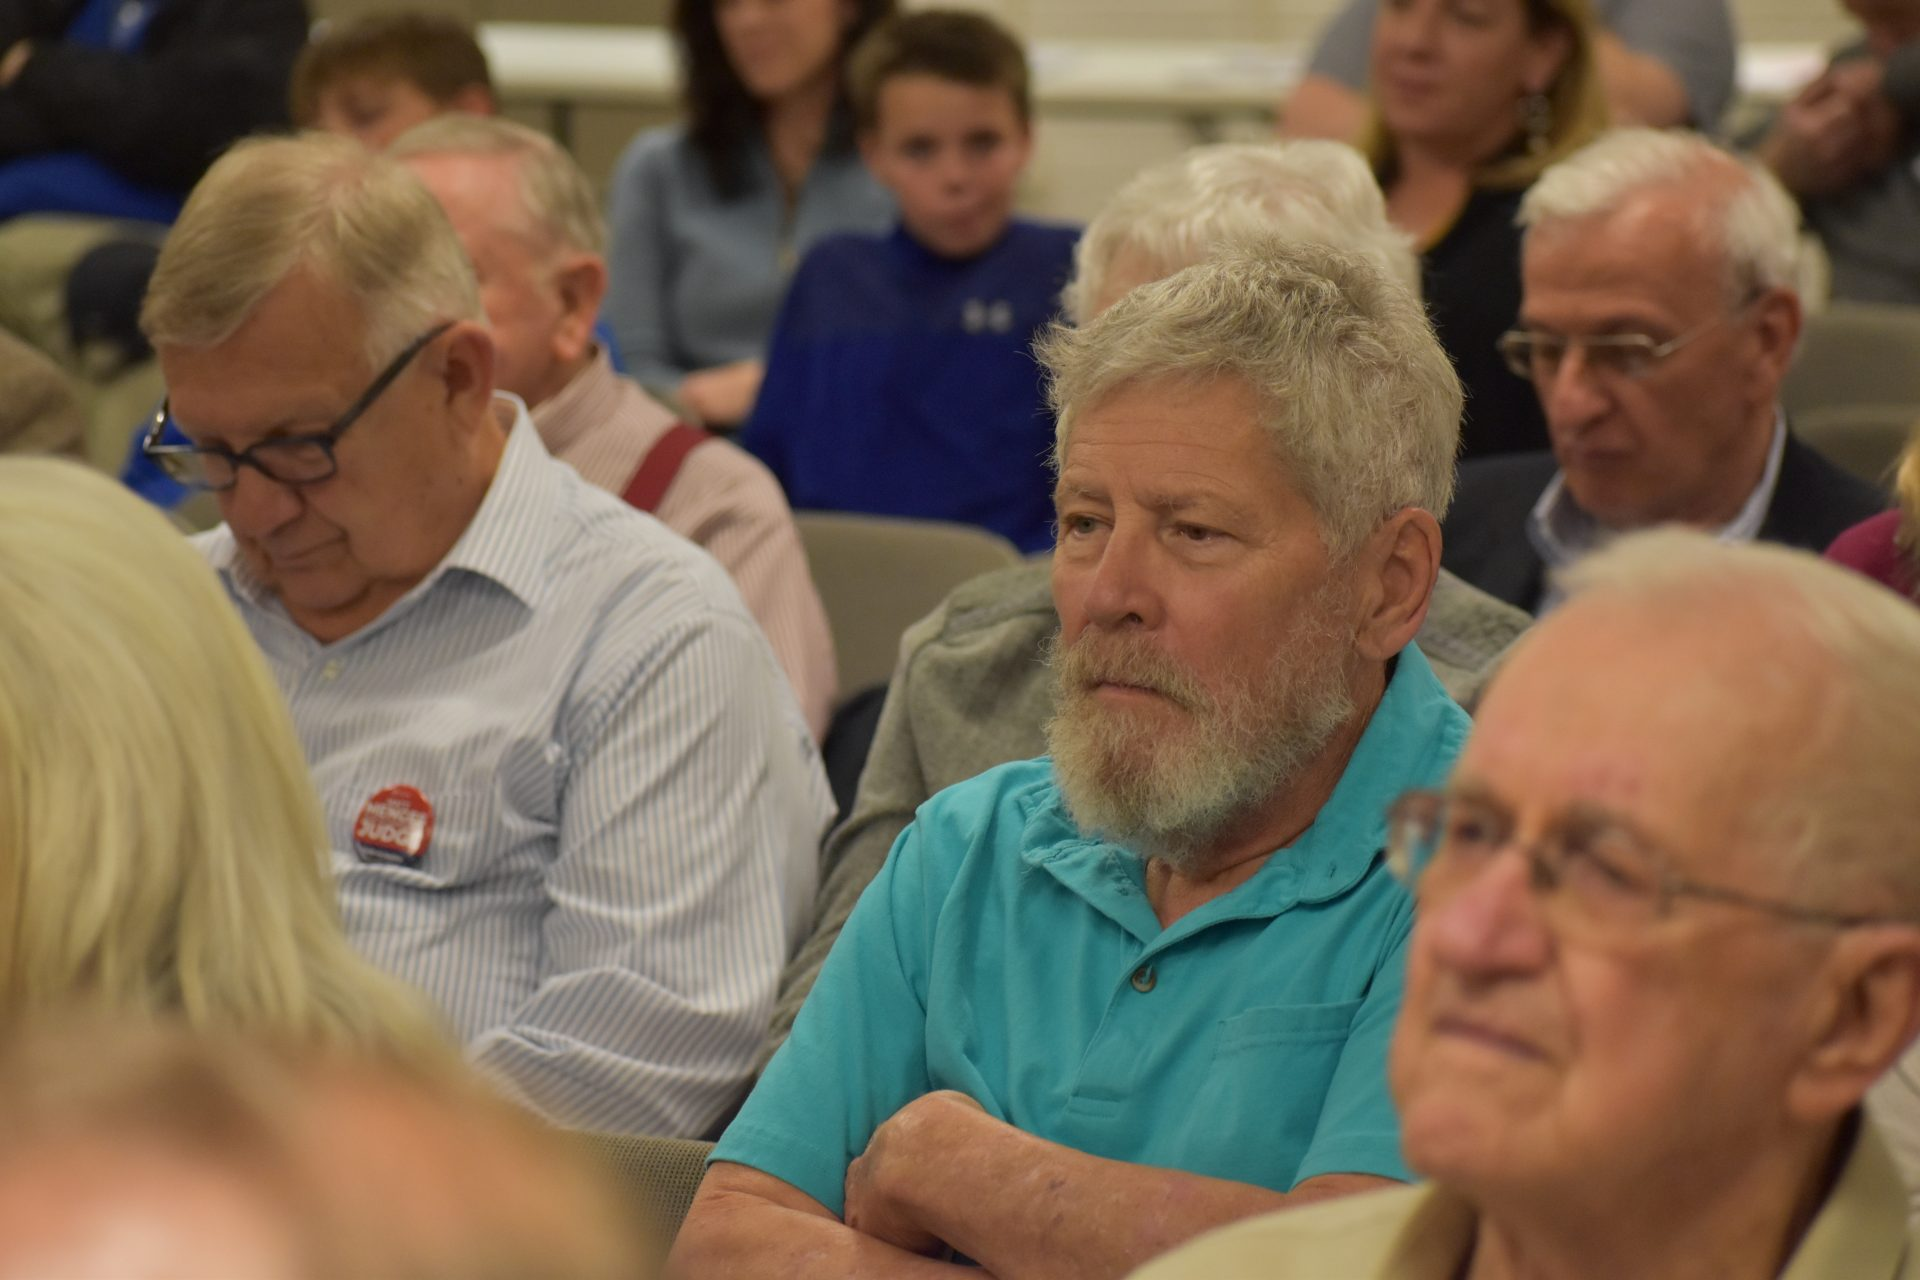 Bonner Smith, center, listens to judge candidates during a debate organized by the Republican Club of York County on April 29, 2019.